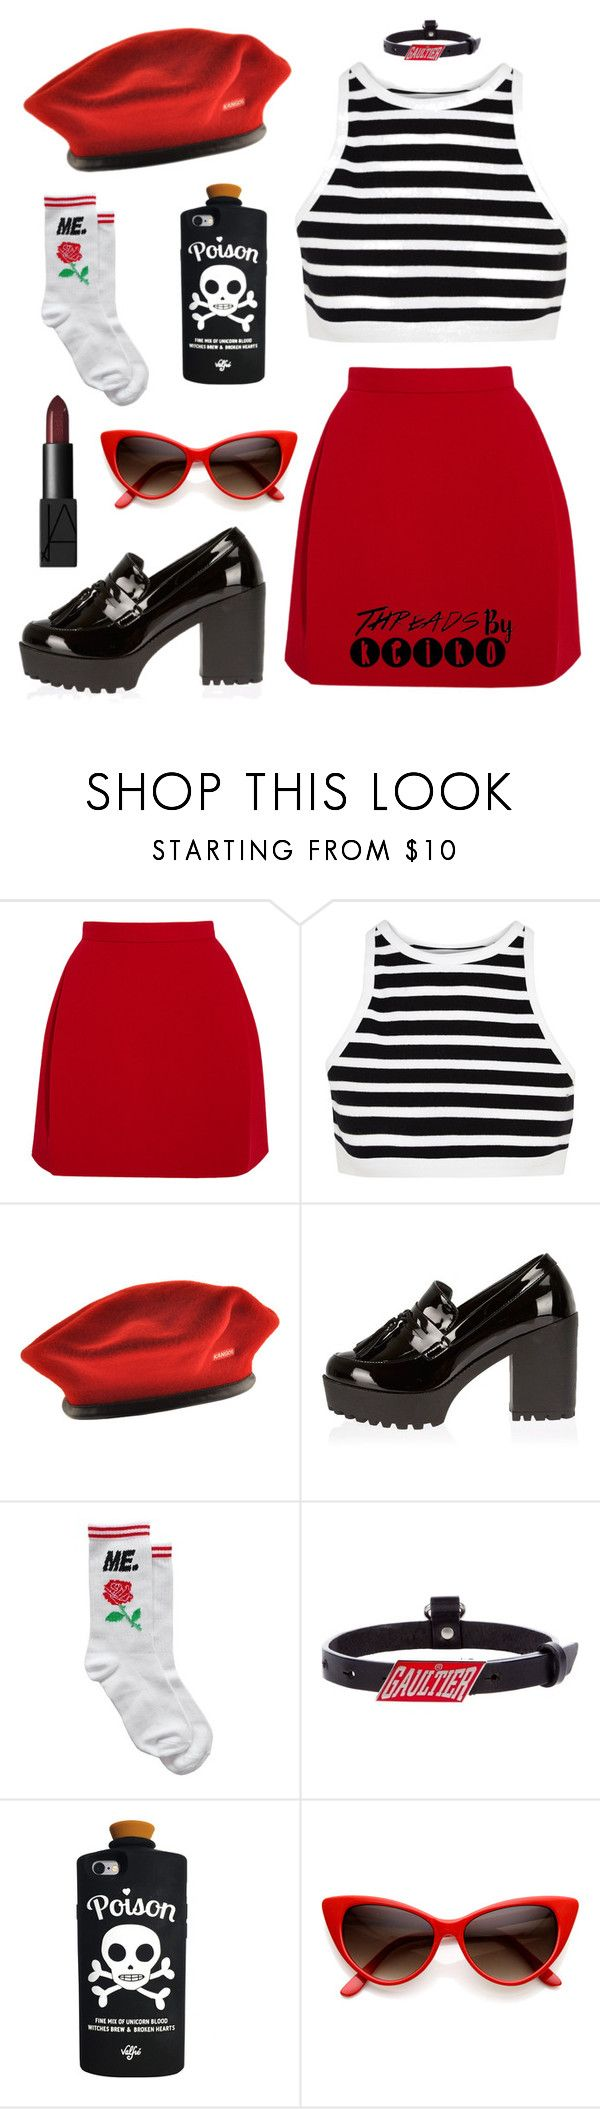 """Bend over boy ☠🈲"" by threadsbykeiko ❤ liked on Polyvore featuring Delpozo, T By Alexander Wang, kangol, River Island, Jean-Paul Gaultier and NARS Cosmetics"